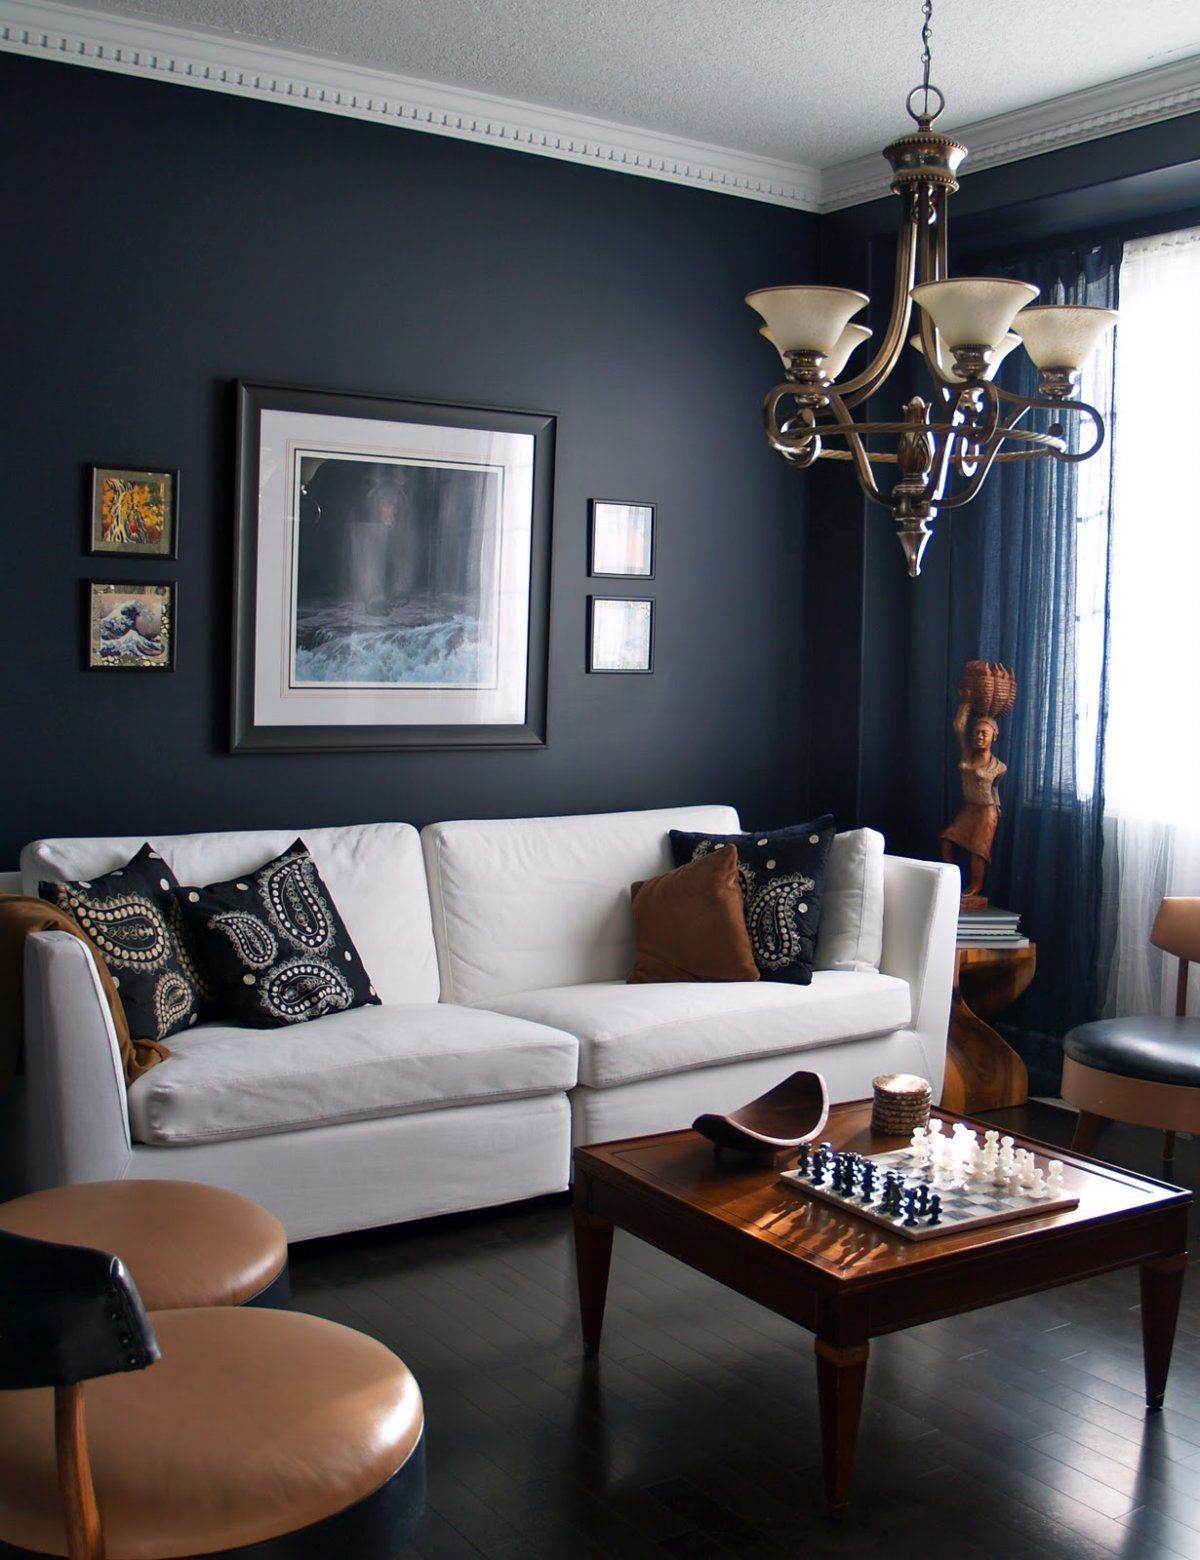 15 Beautiful Dark Blue Wall Design Ideas | { LIVING ROOM } Designs ...